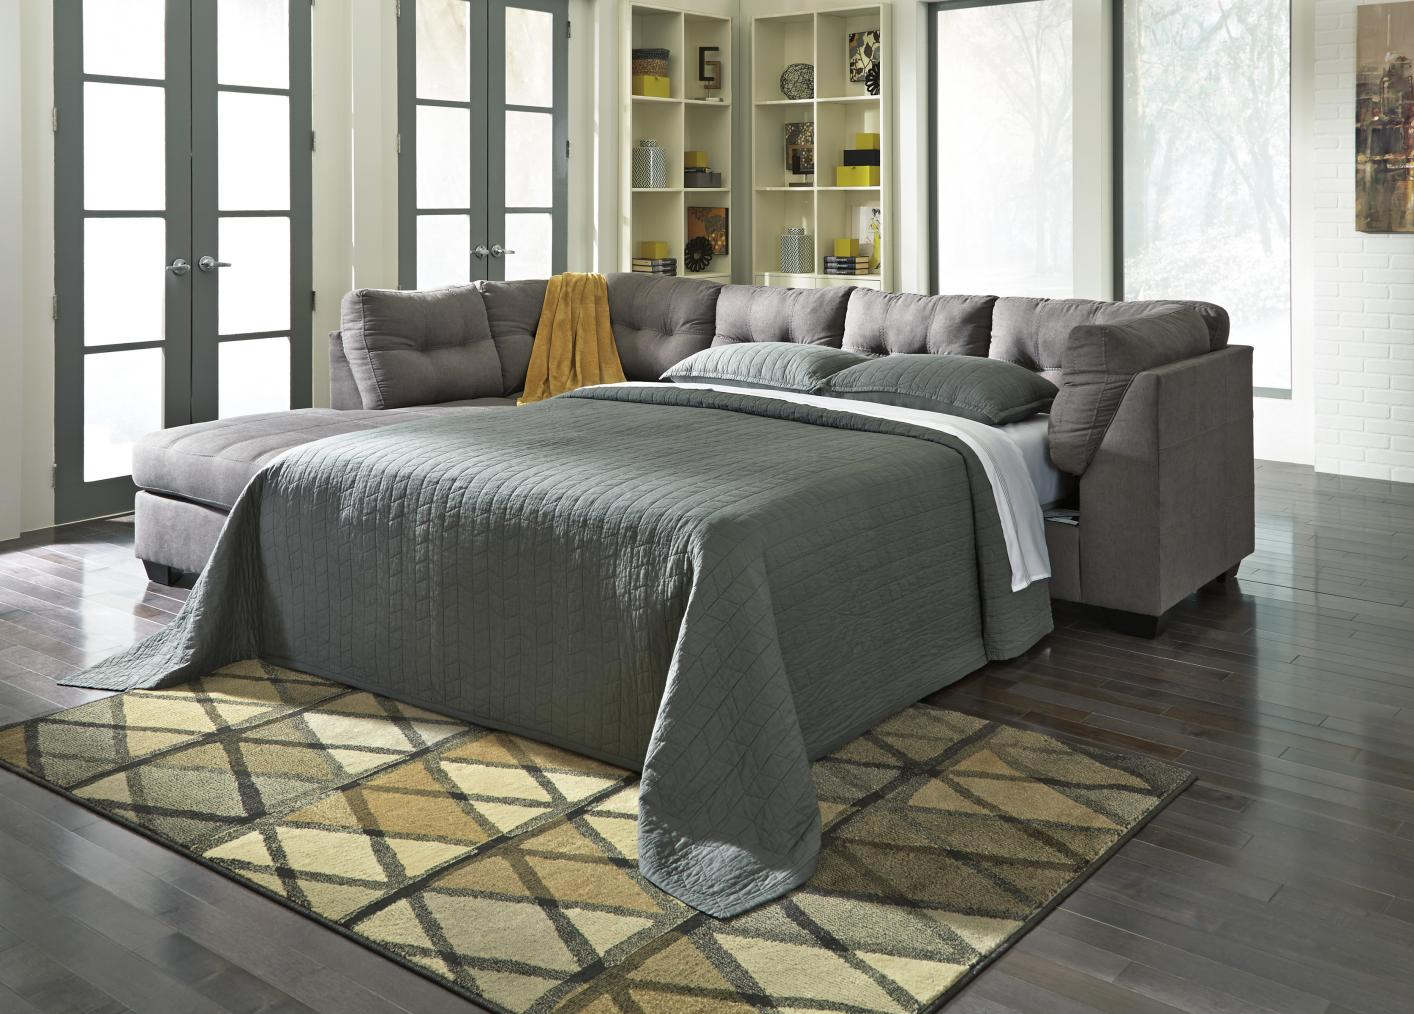 Maier Grey Fabric Sectional Sleeper Sofa : raf sofa sectional - Sectionals, Sofas & Couches